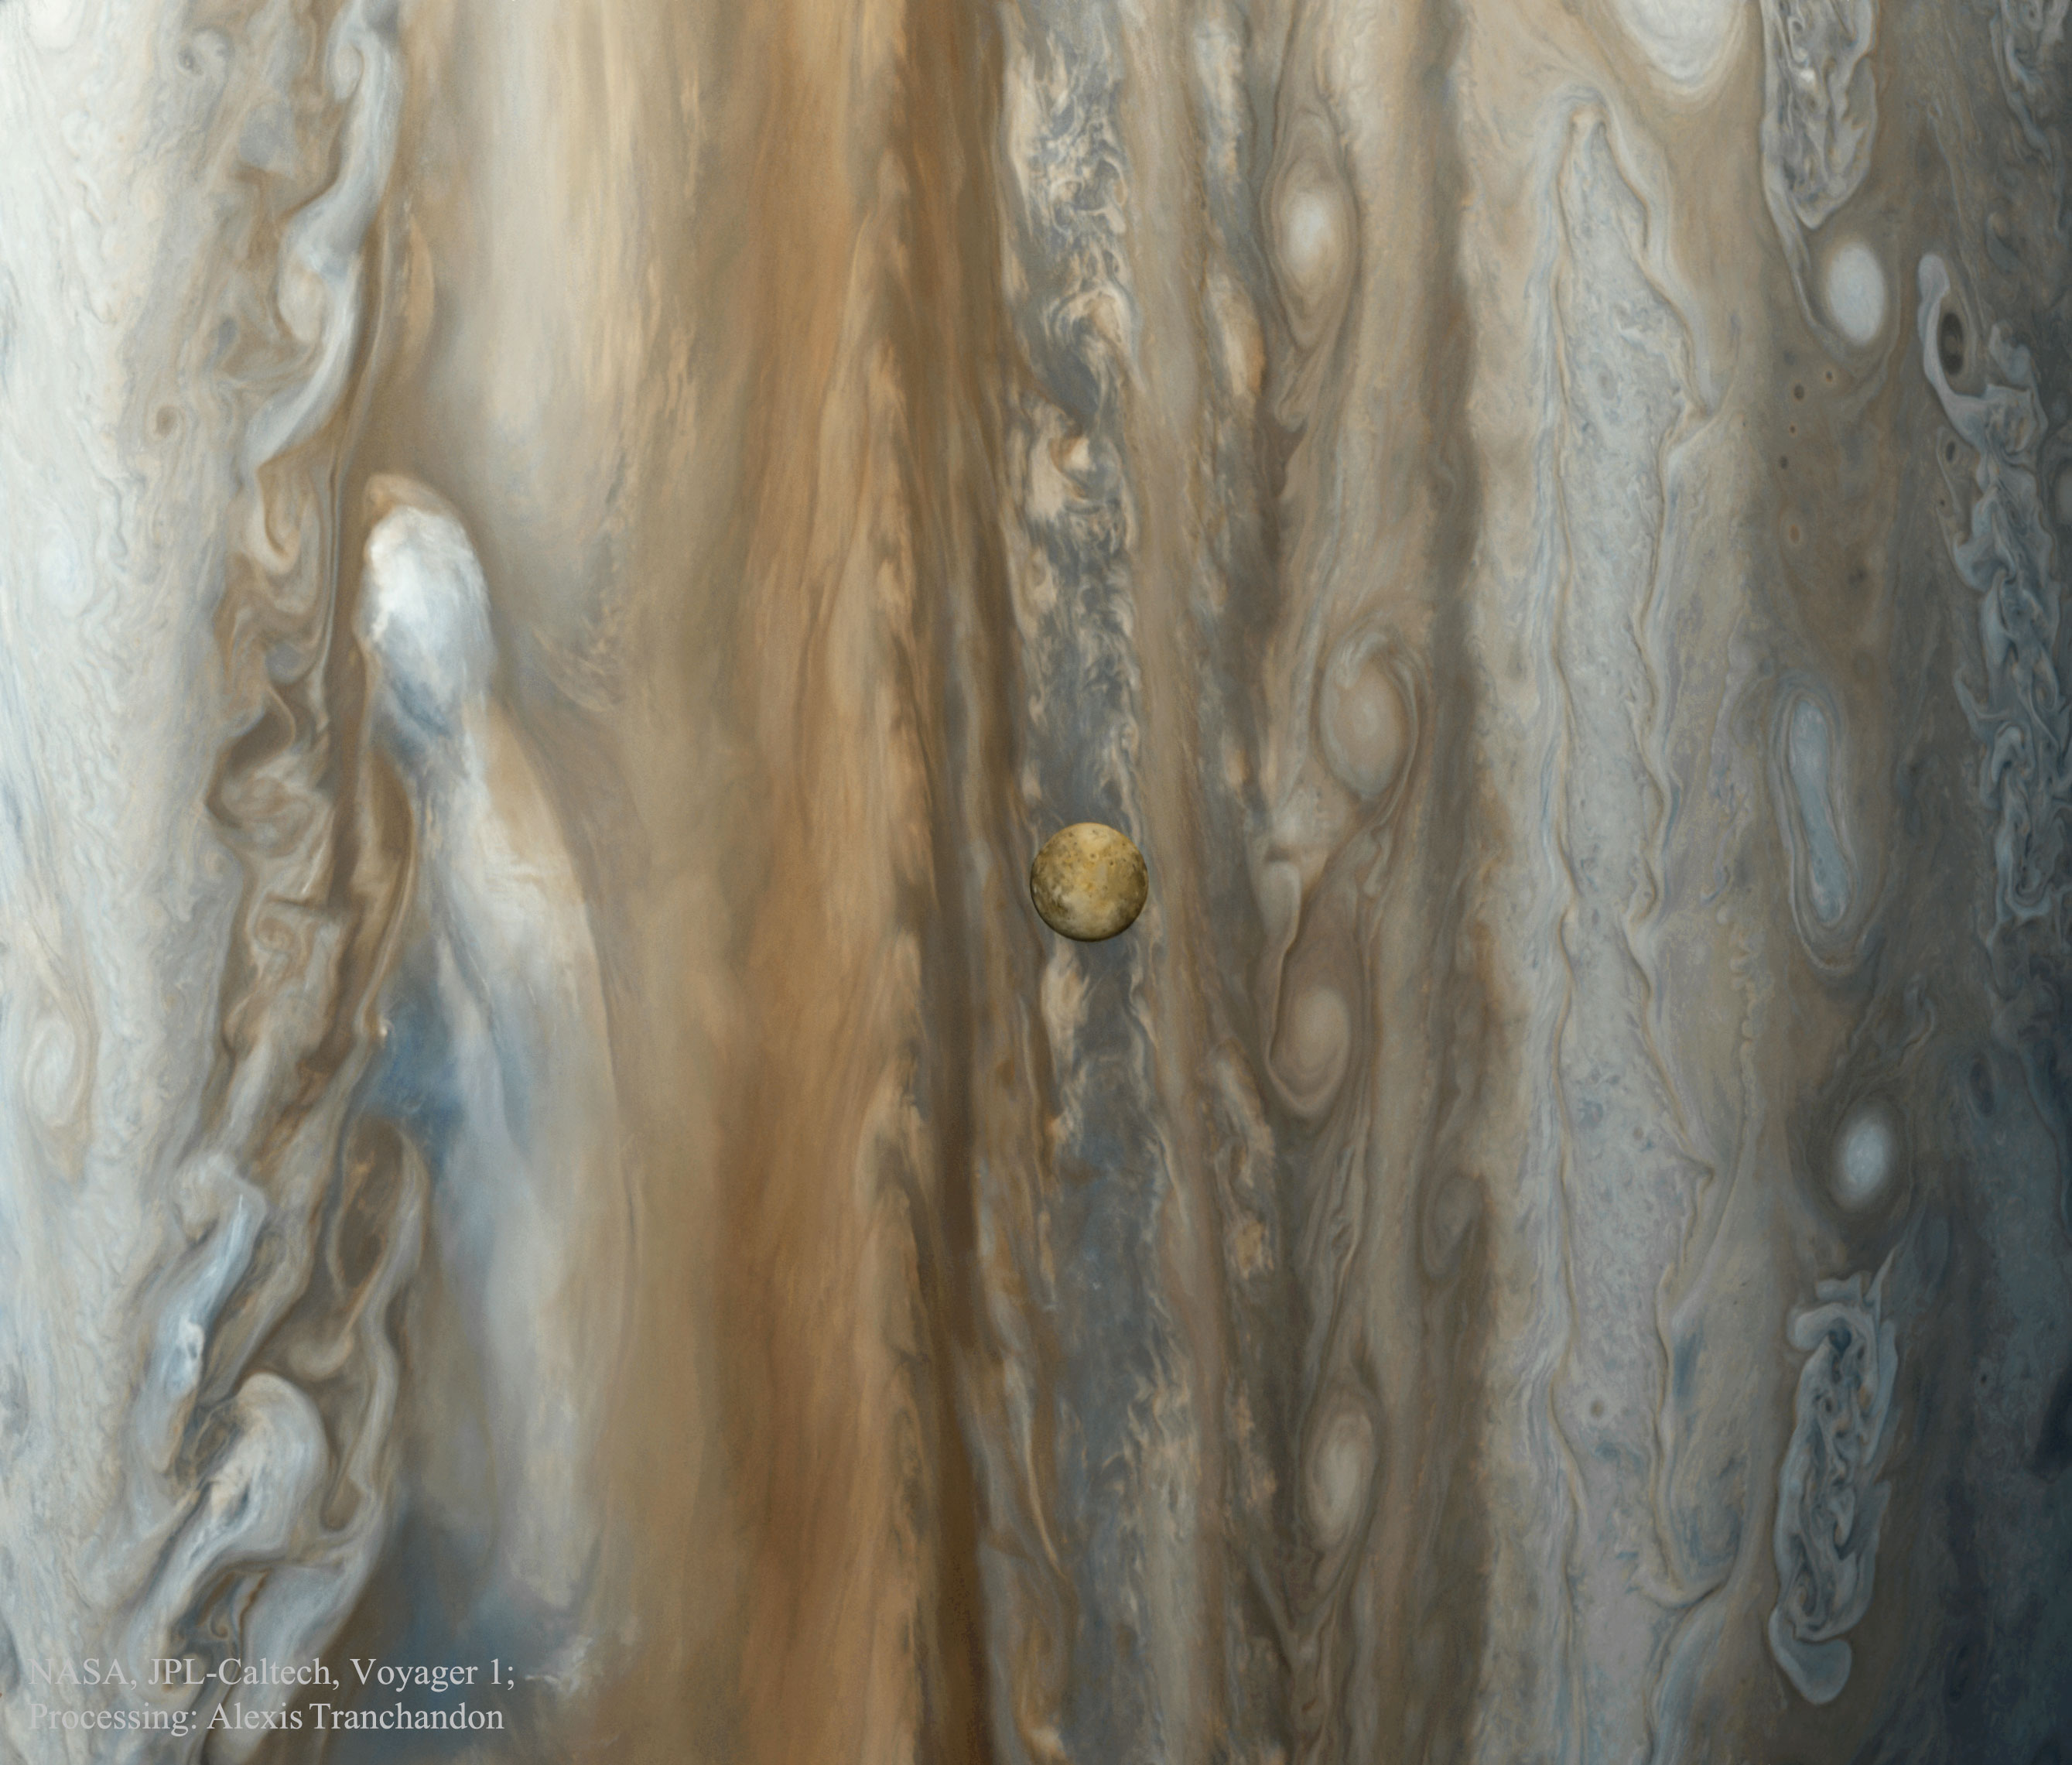 Io over Jupiter from Voyager 1